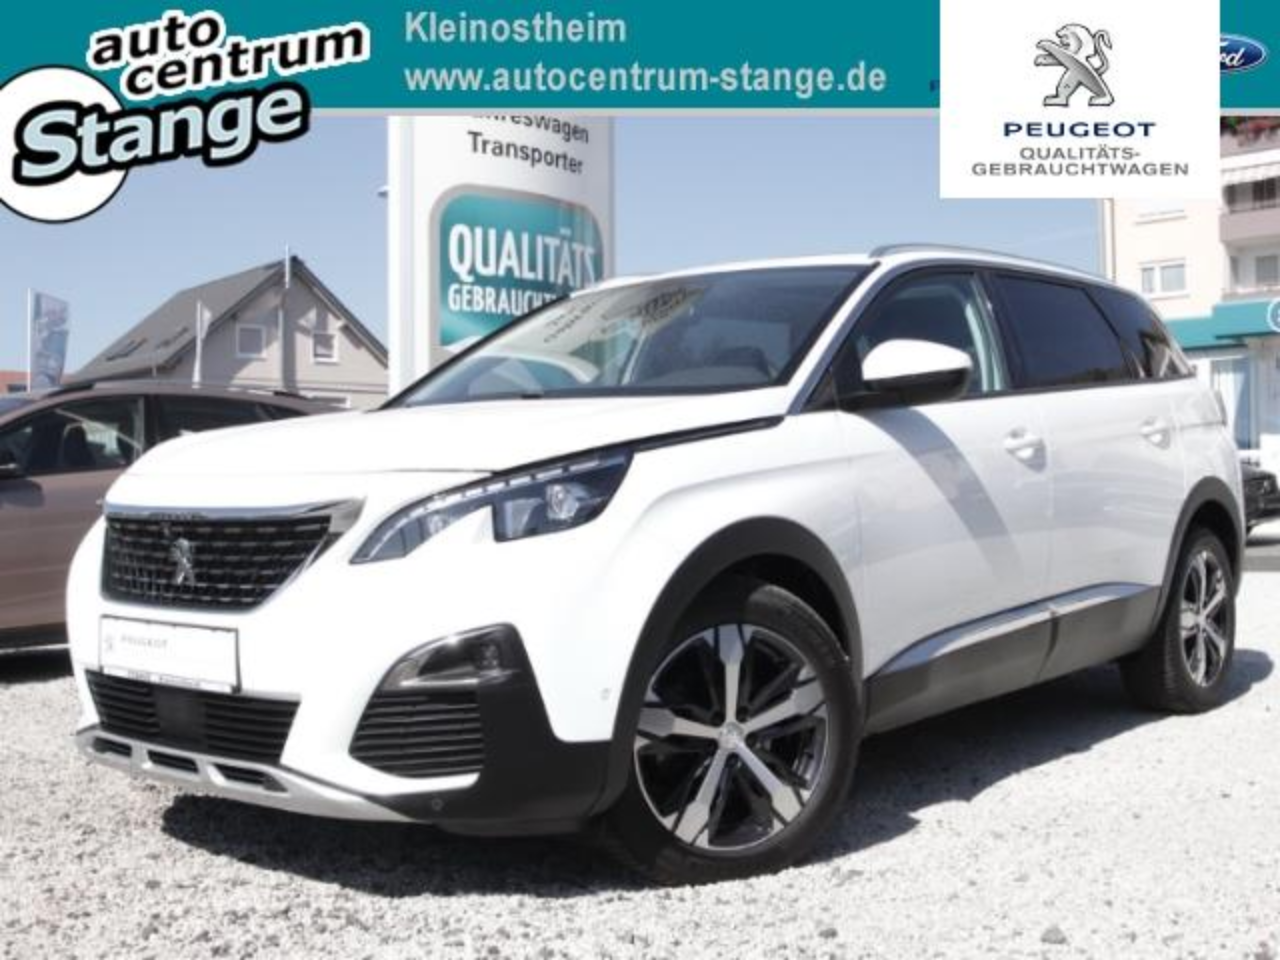 Peugeot 5008 Allure 130 7-Sitzer Full -Led Panorm- Schiebedach